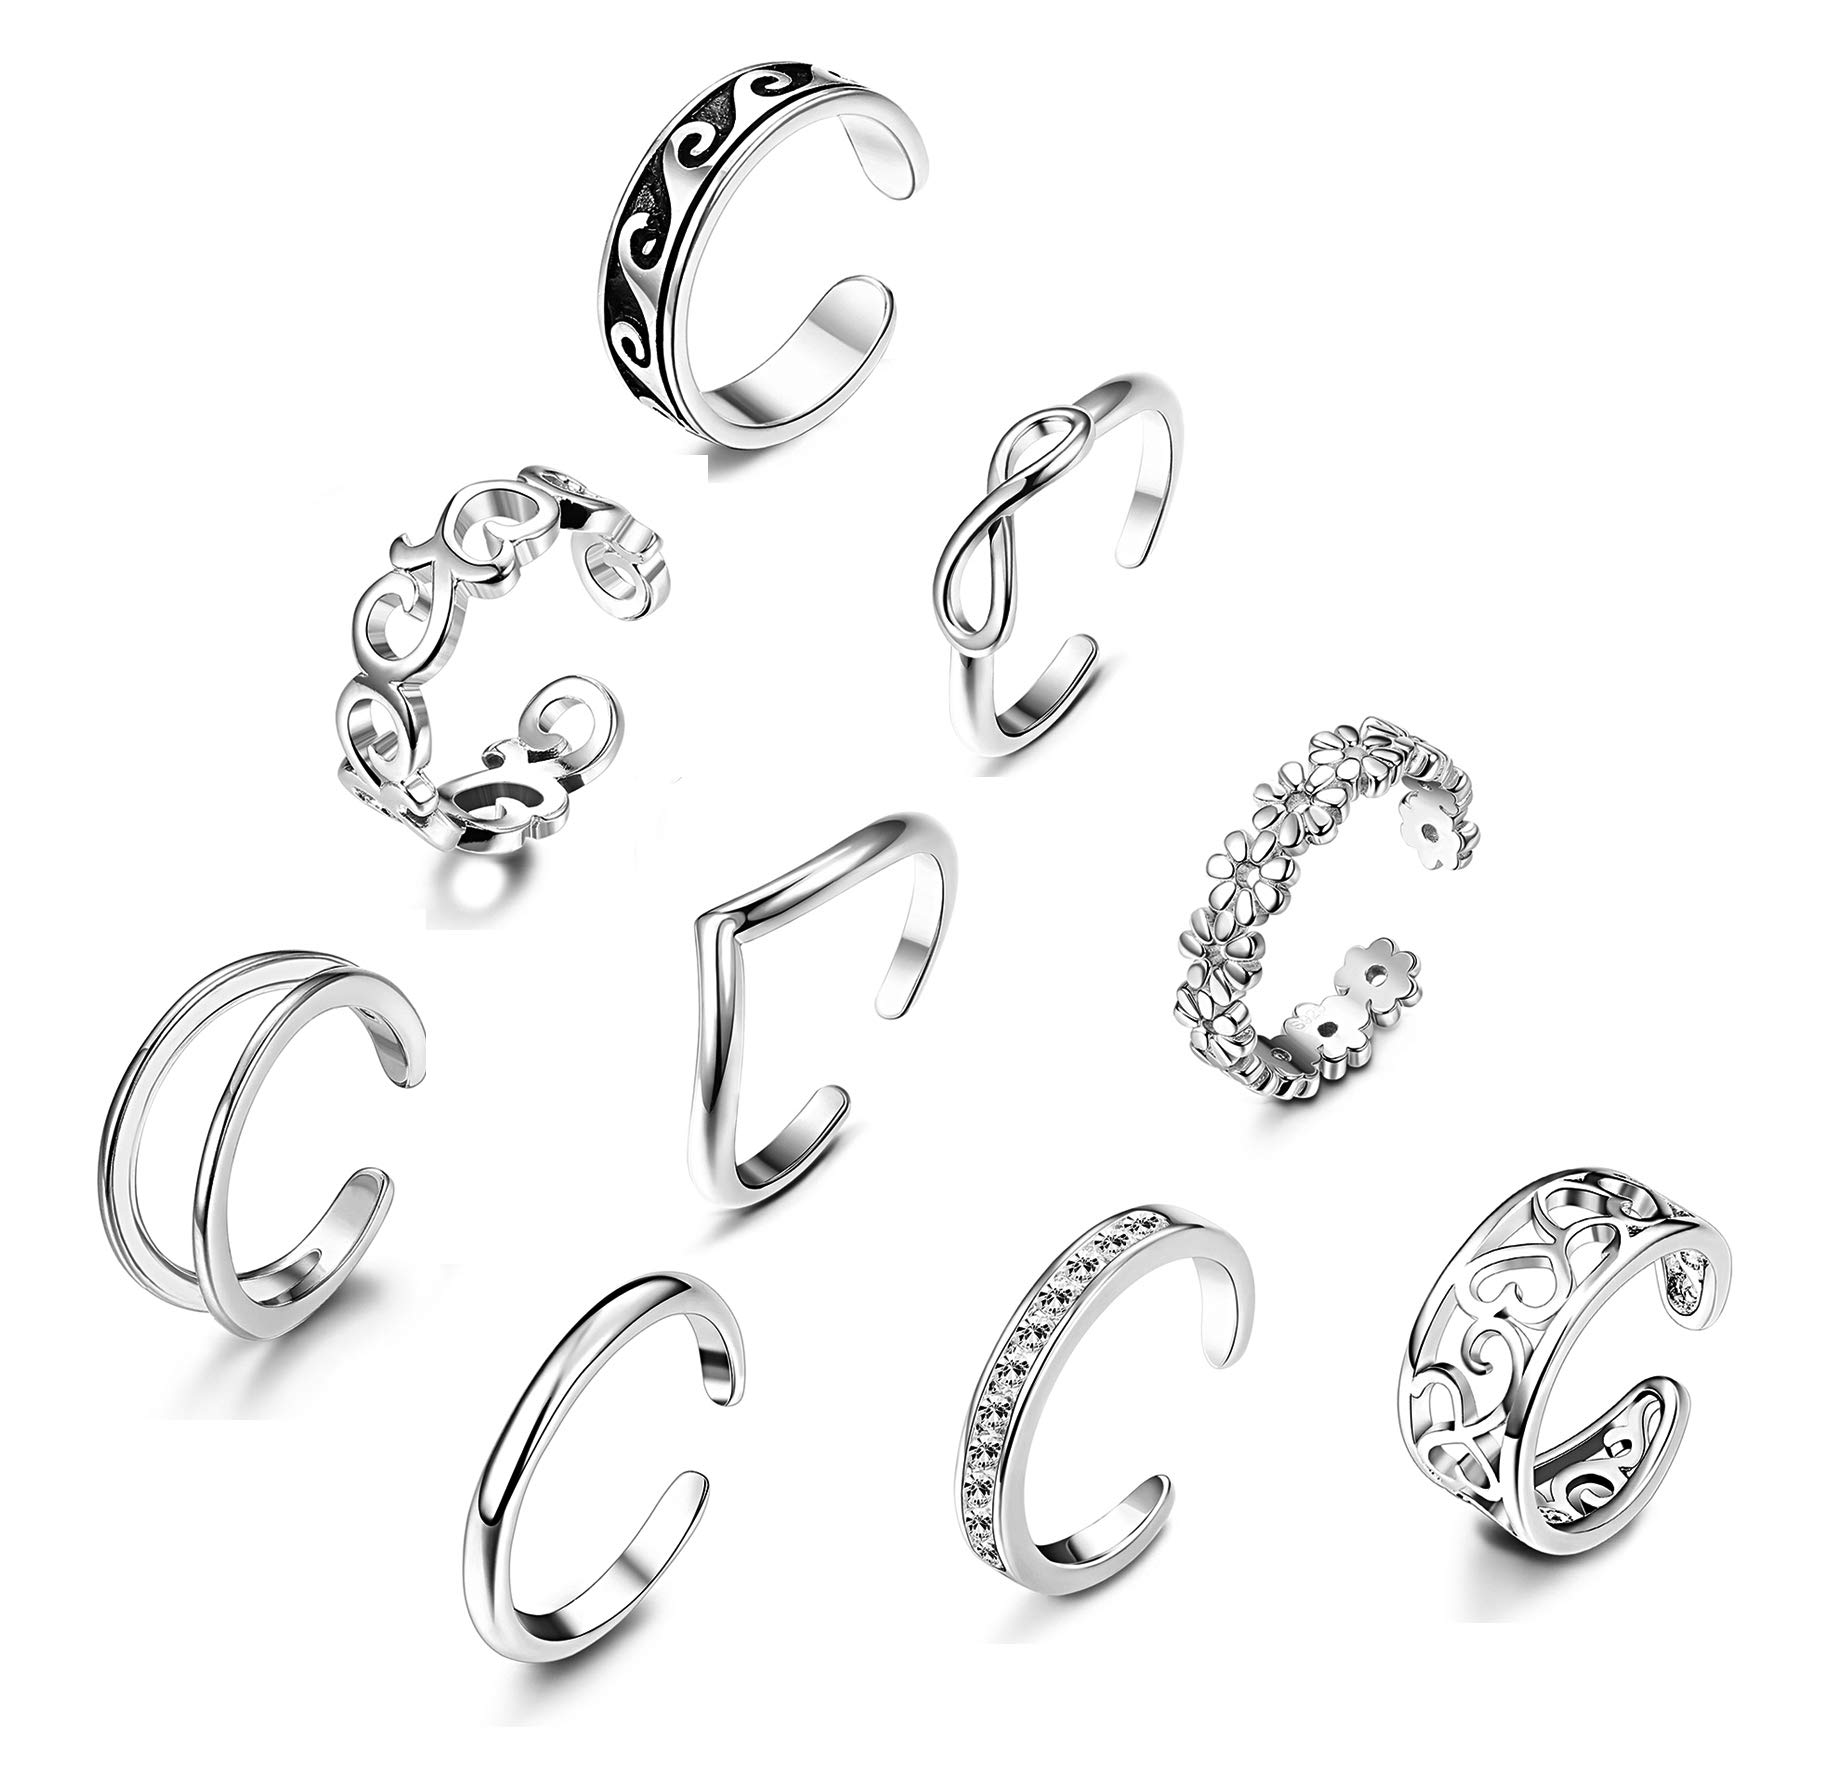 YADOCA 9 Pcs Adjustable Open Toe Rings Knuckle Ring Set for Women Girls Vintage Foot Jewelry Various Types Silver Tone by YADOCA